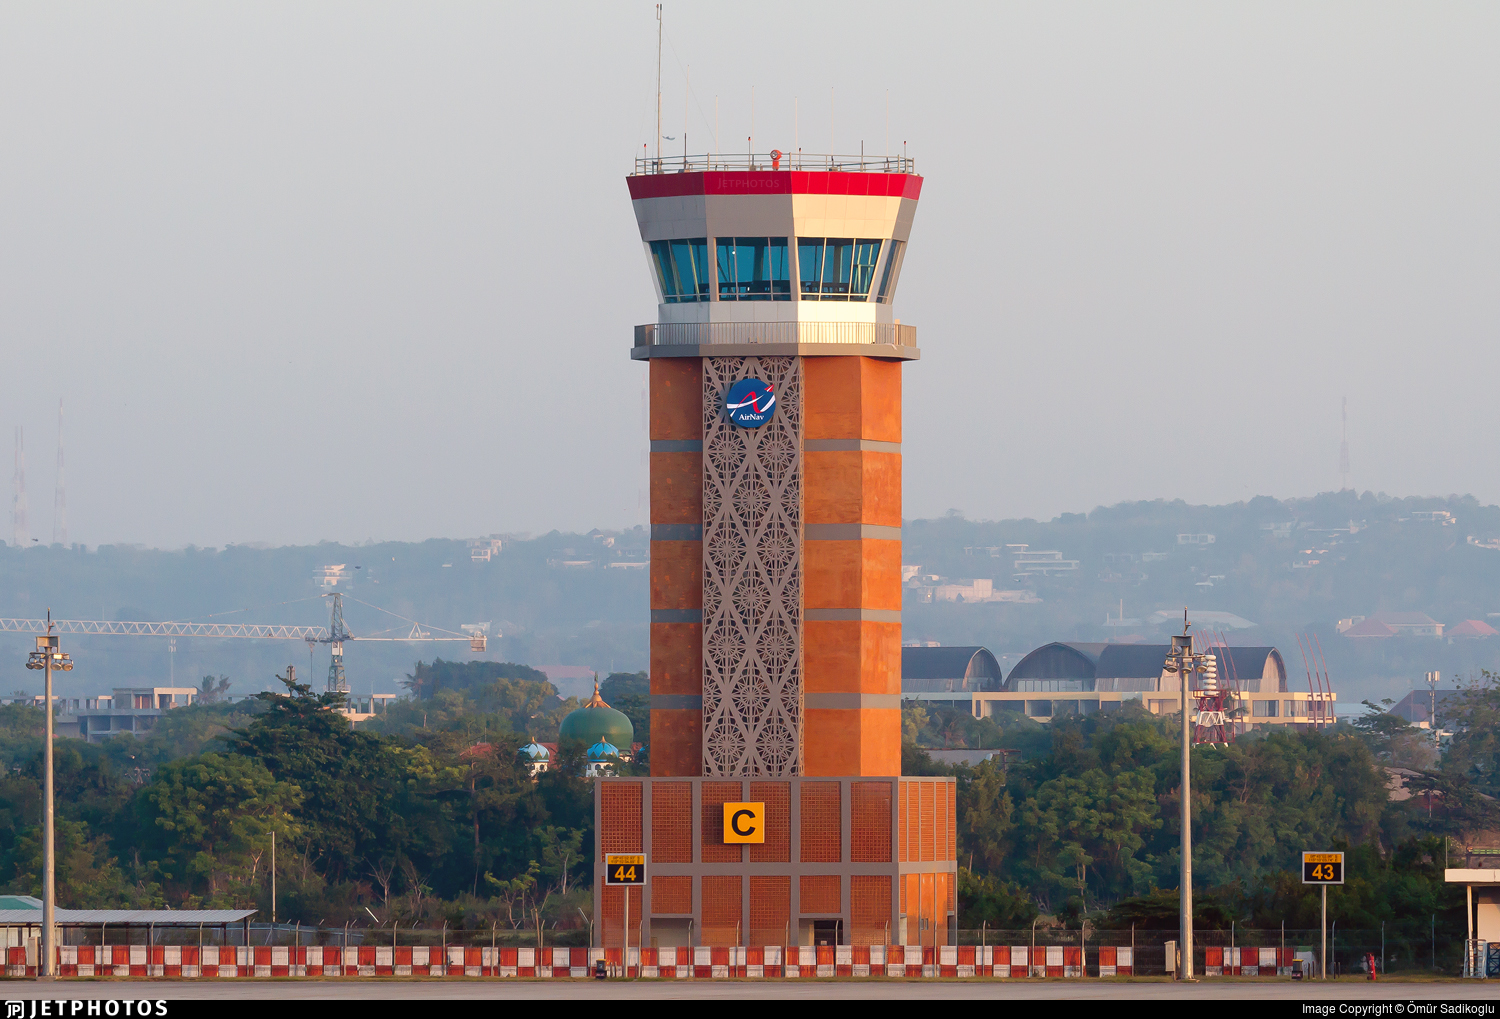 WADD - Airport - Control Tower